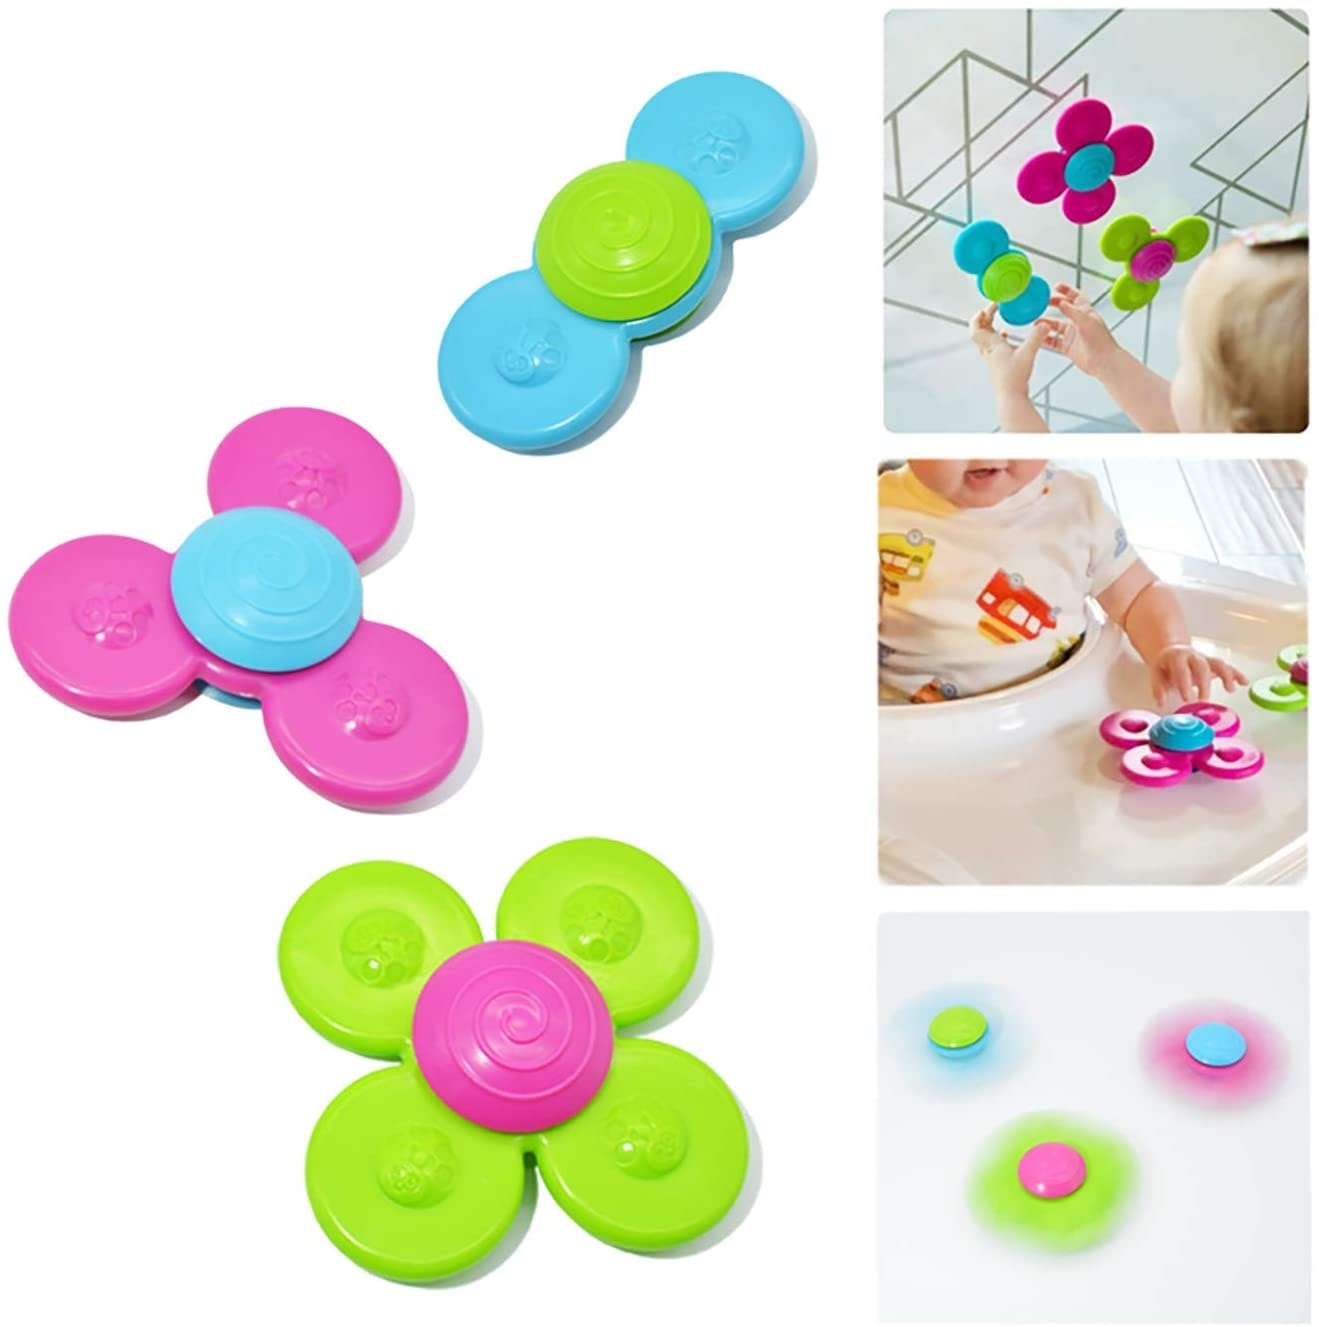 Cartoon Fidget Spinner Kids Toys Colorful Insect Gyro Toy Relief Stress Educational Fingertip Toys For Kids Adults Birthday Gift enlarge